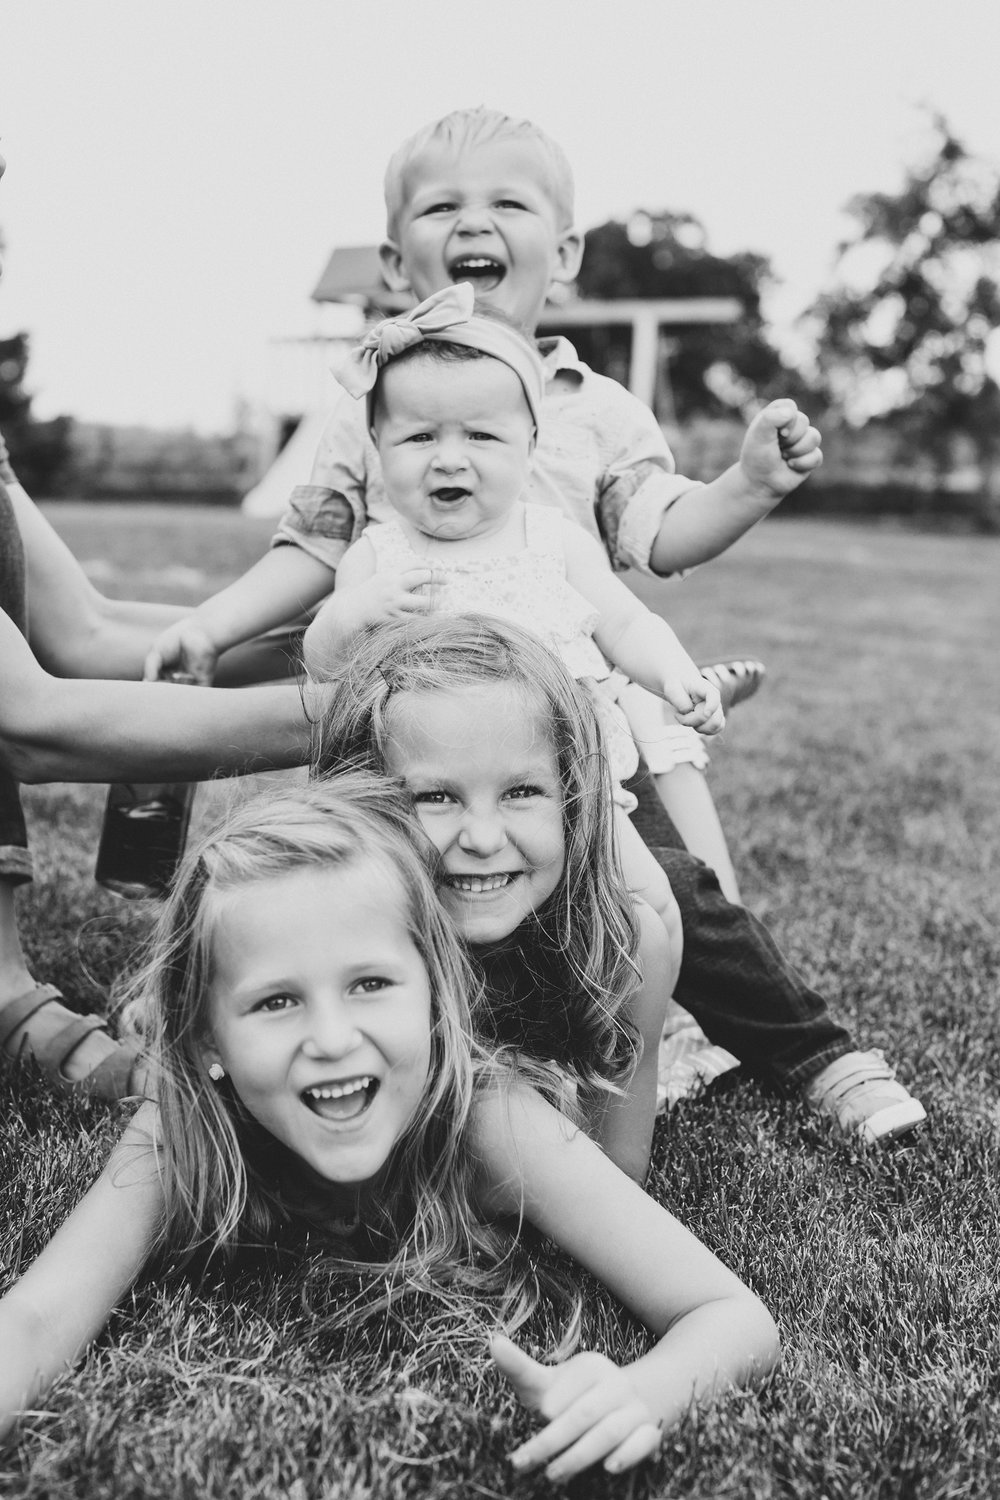 Jordan Edens Photography_Tri cities photographer_tri cities family photographer_kennewick photographer_richland photographer_travel photographer_iowa photographer_family photos_lifestyle family_child photographer_memories and moments_22